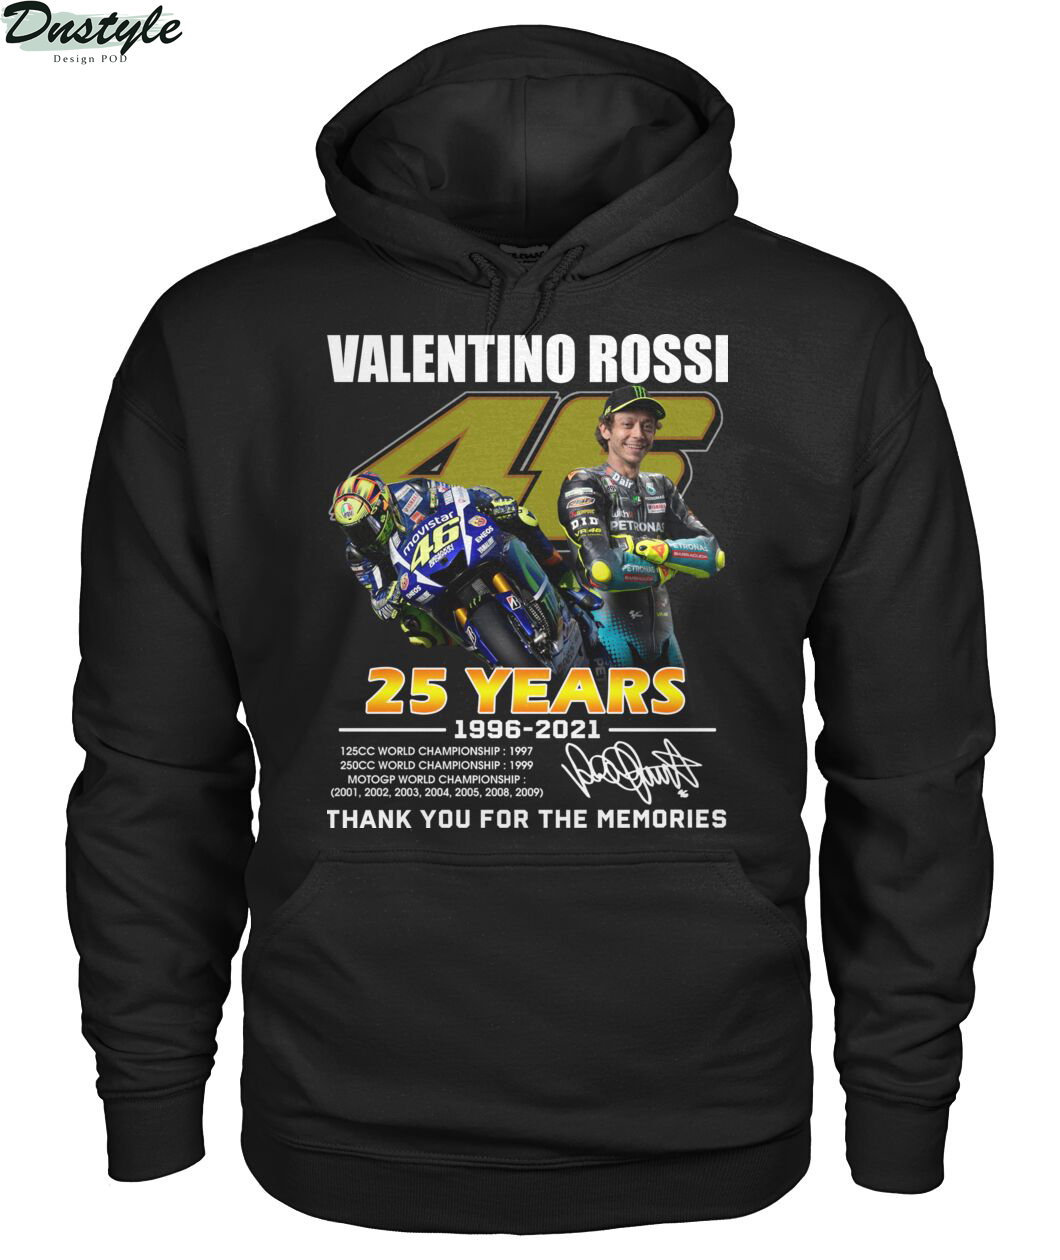 Valentino rossi 25 years thank you for the memories hoodie